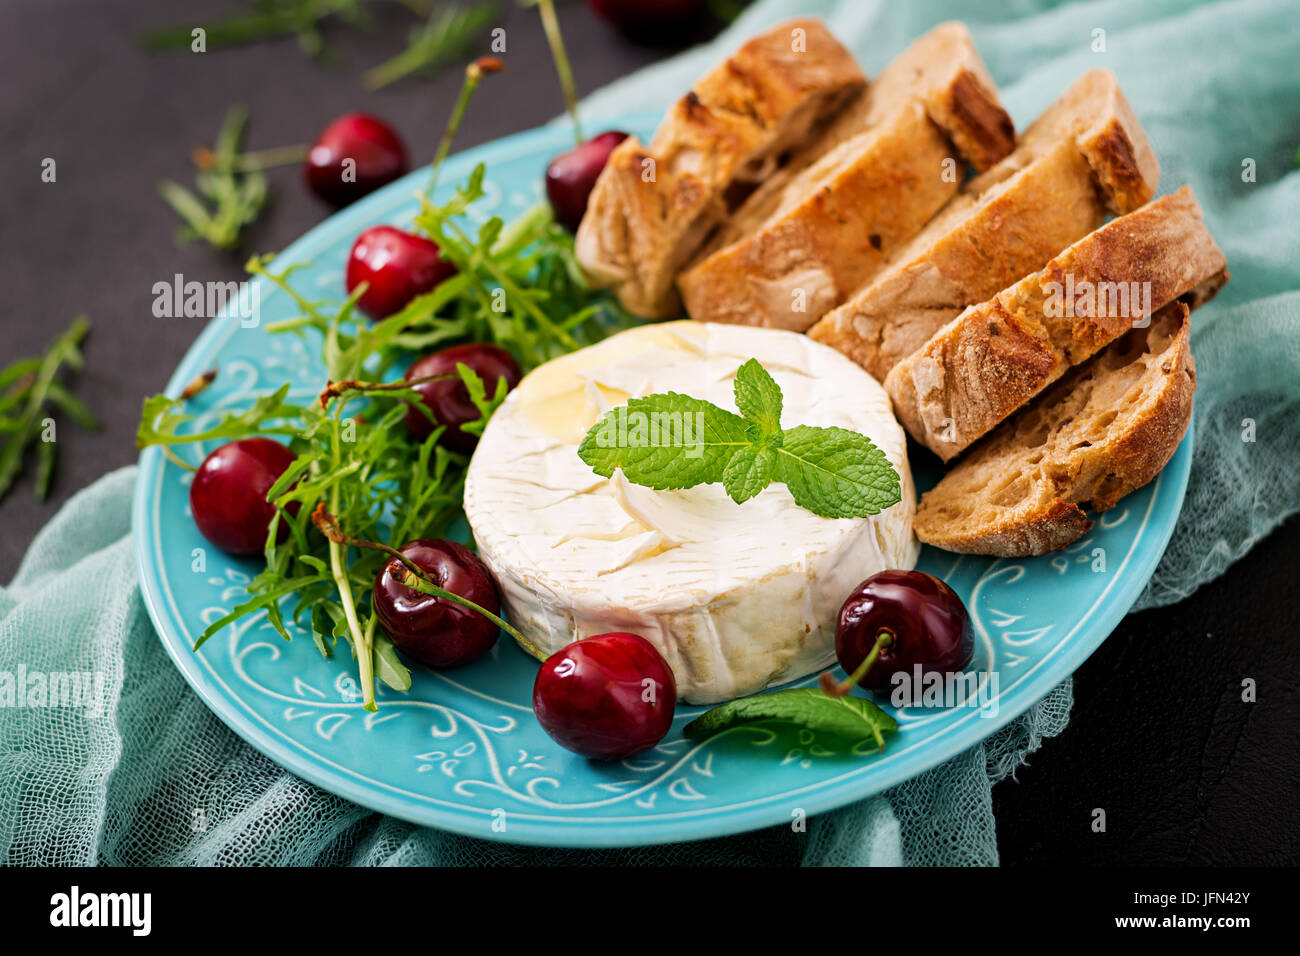 Baked Camembert cheese, toast and arugula salad with  sweet cherries. - Stock Image